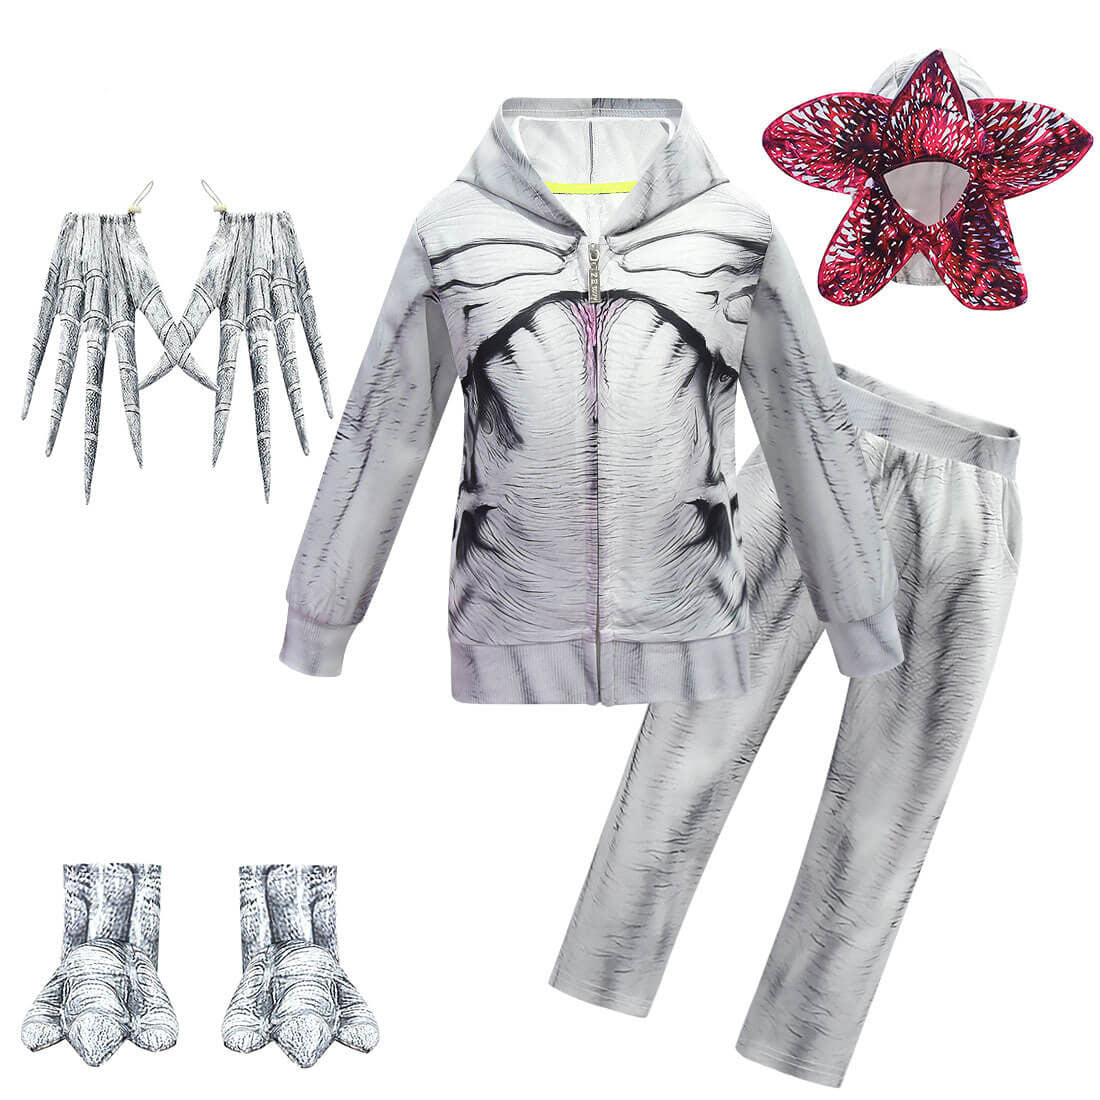 Kids Demogorgon Costume Party Cosplay Stranger Monster Outfits